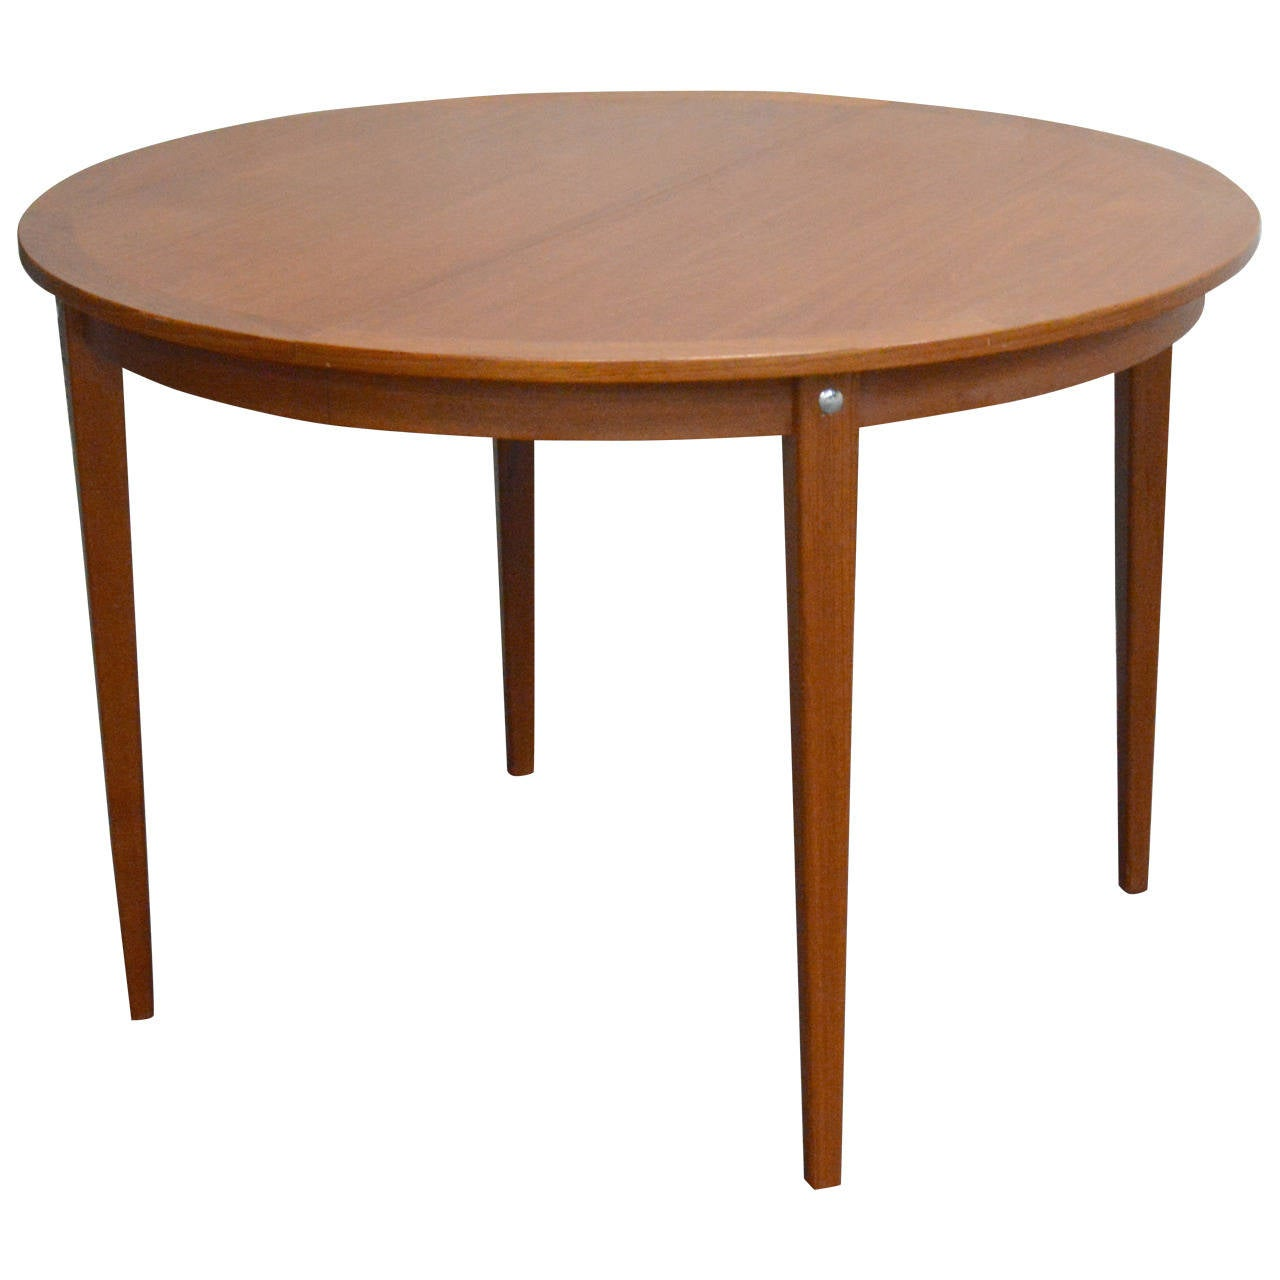 Mid century modern round swedish teak dining table for for Modern contemporary dining table